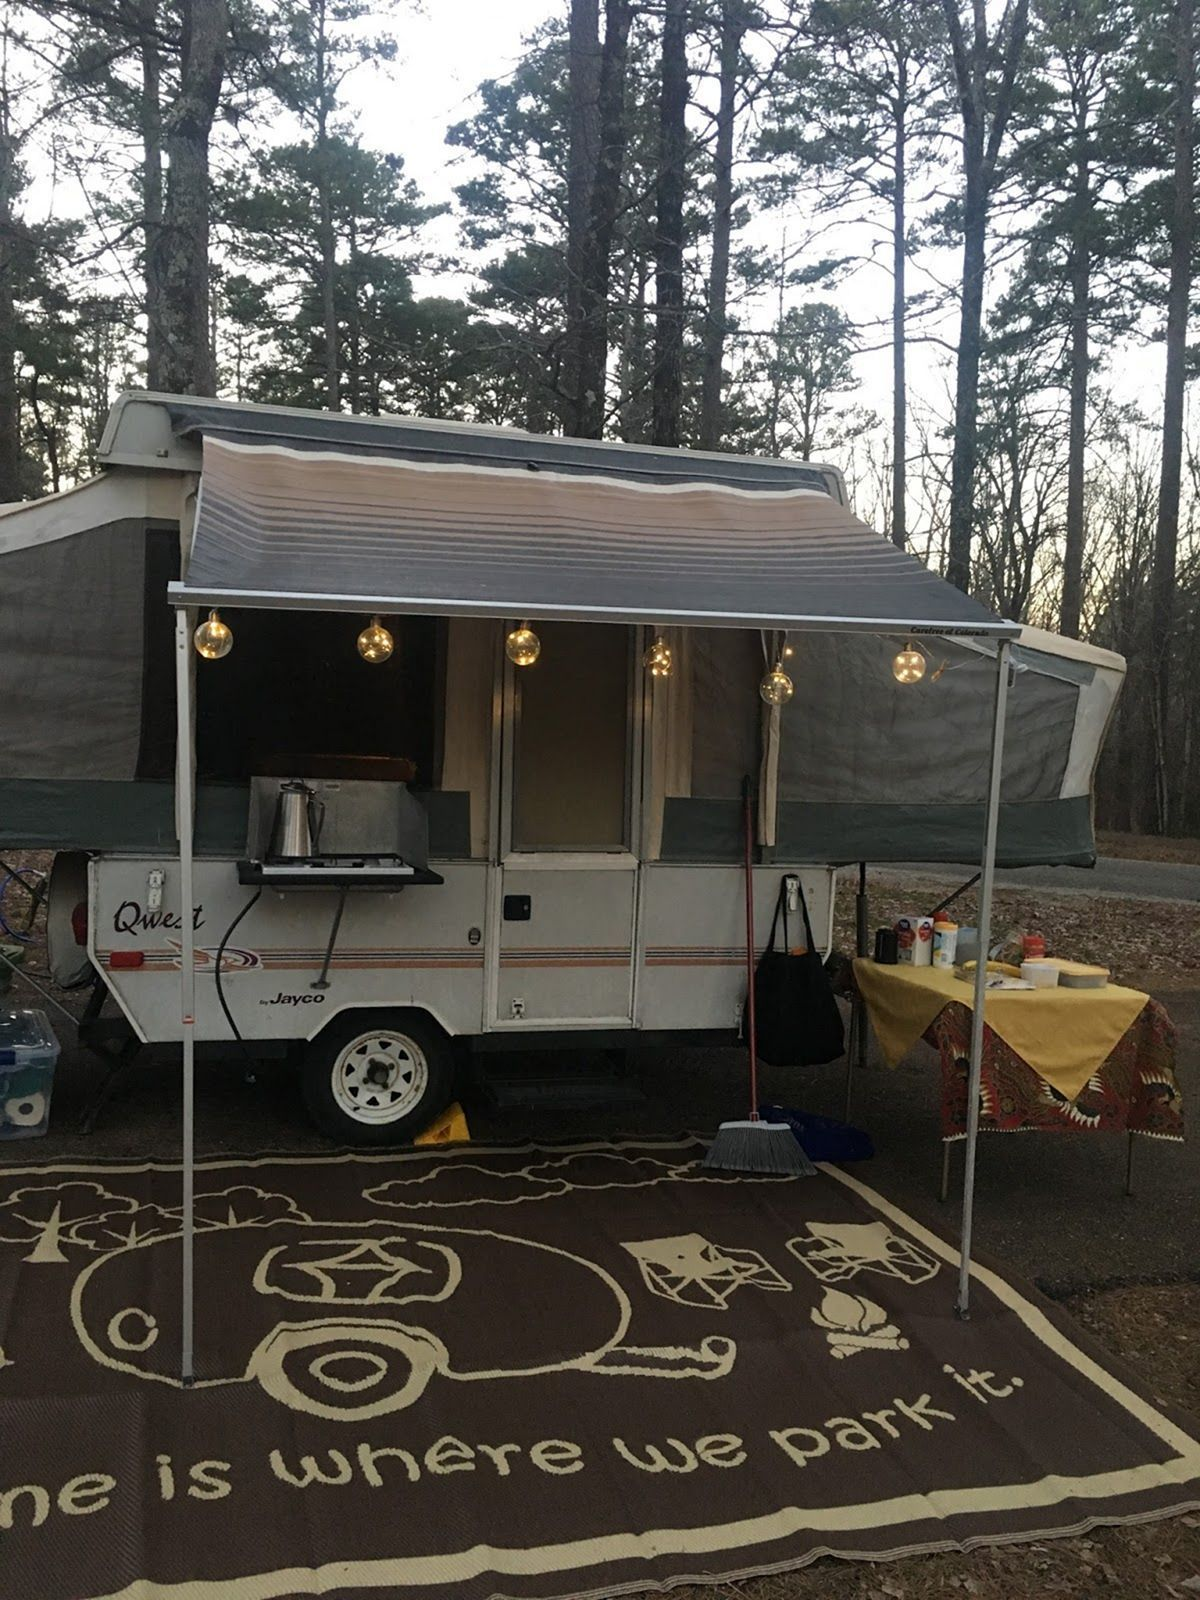 Amazing Camper Van With Awning Ideas Phenomenon 43 Best Camper Awning Ideas For Perfect Summer Camp Remodeled Campers Pop Up Camper Camper Awnings